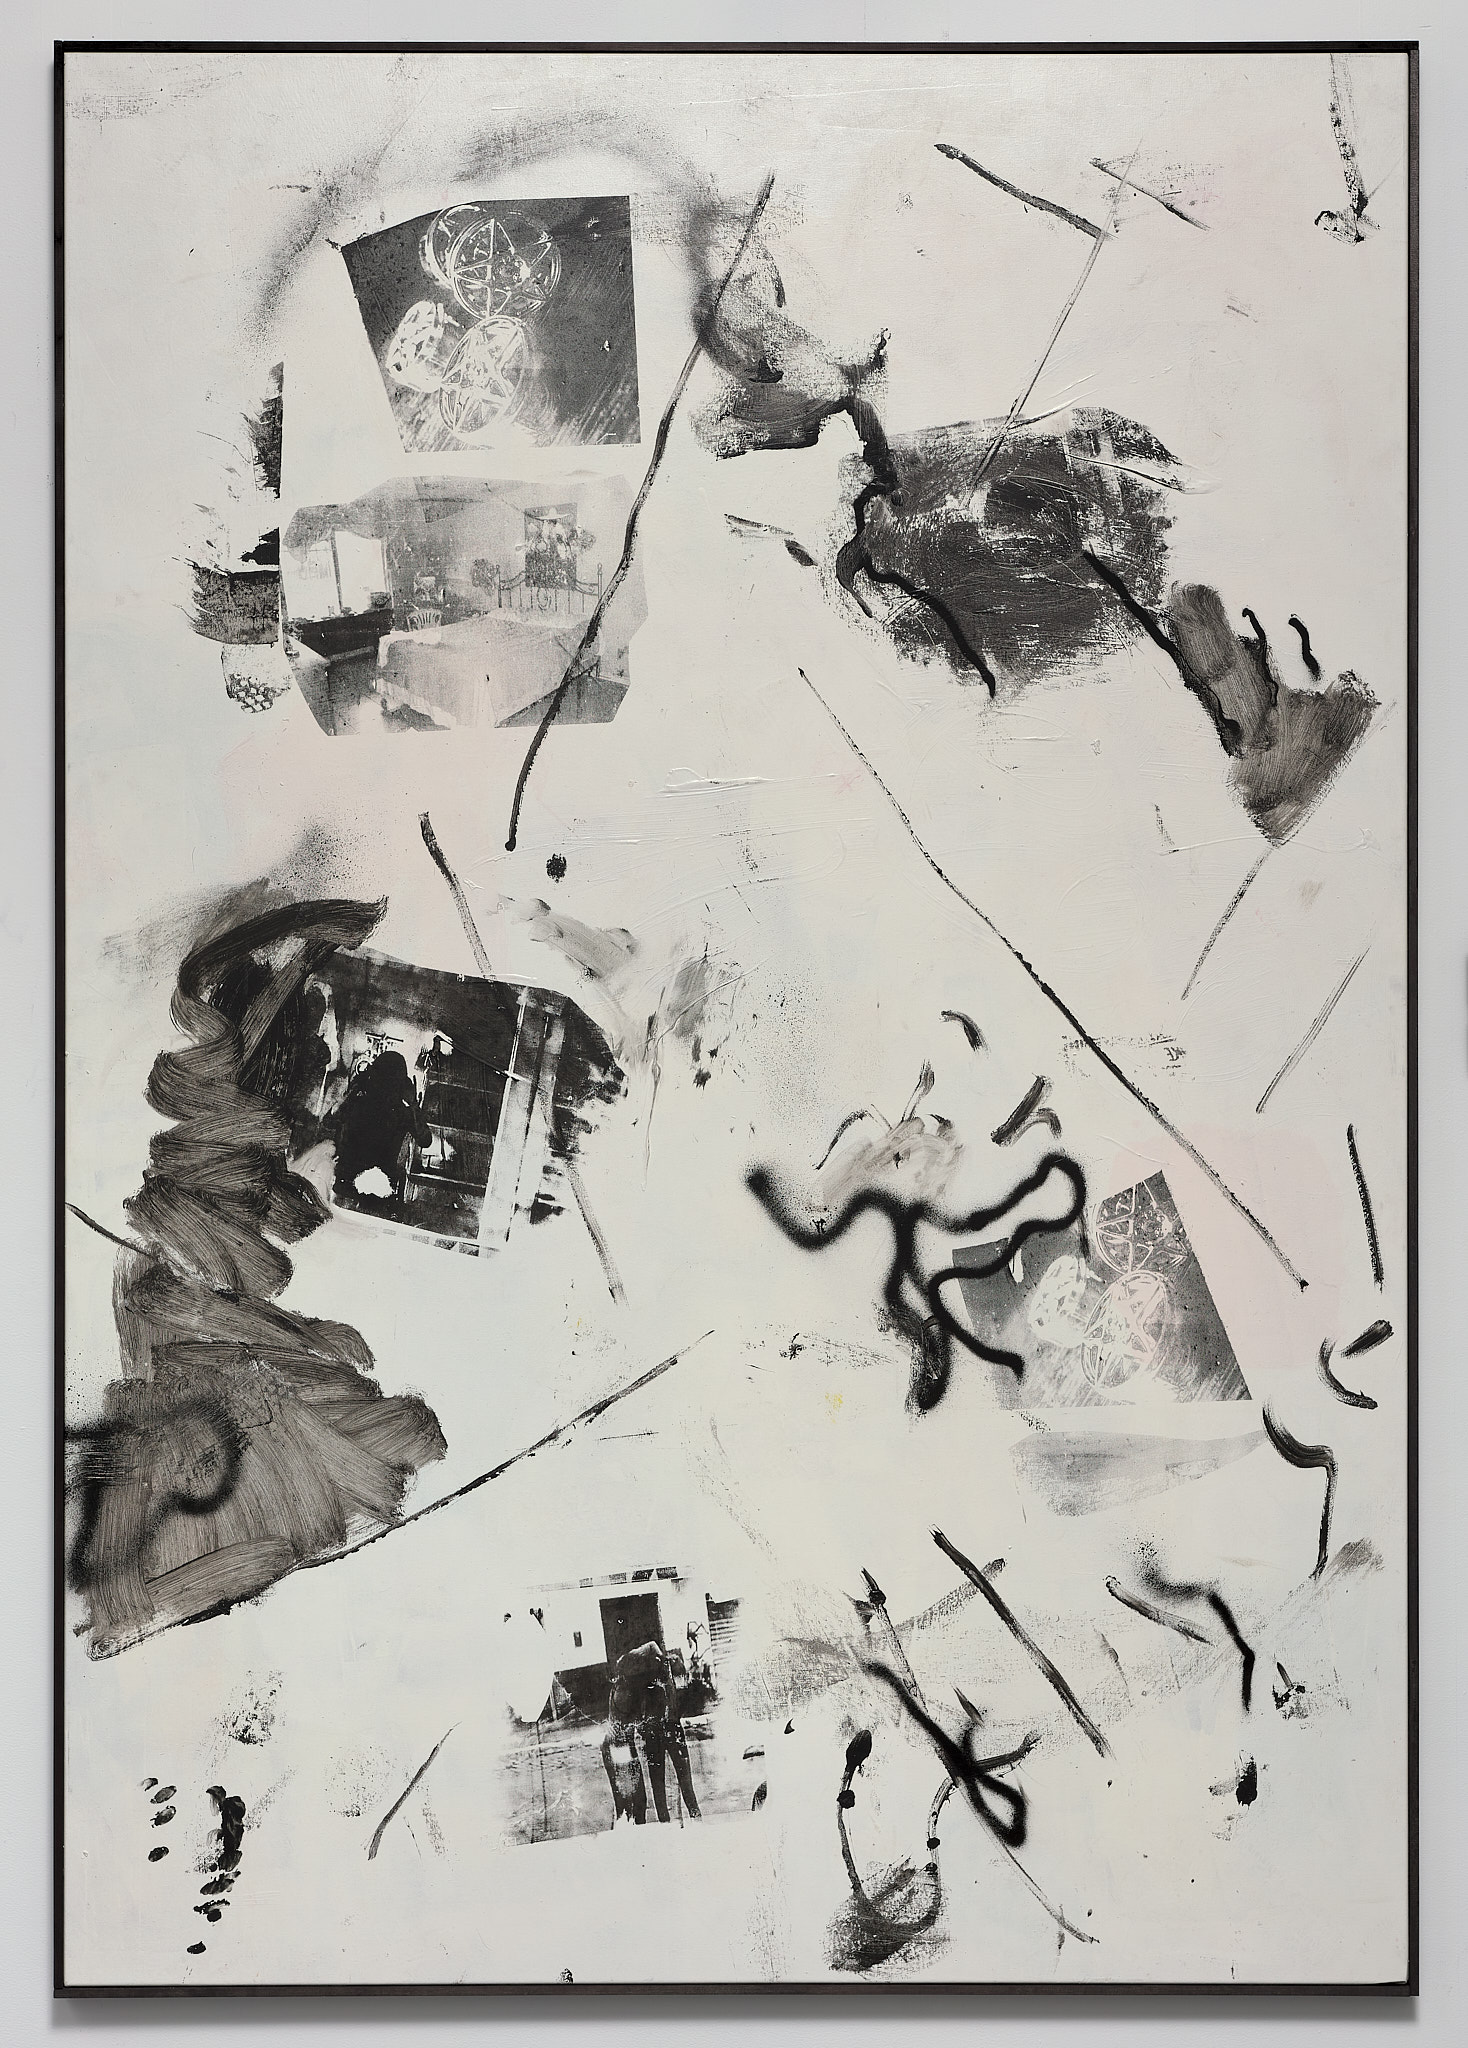 What I Claim, 2012 silkscreen, acrylic, lacquer on canvas 200 140cm